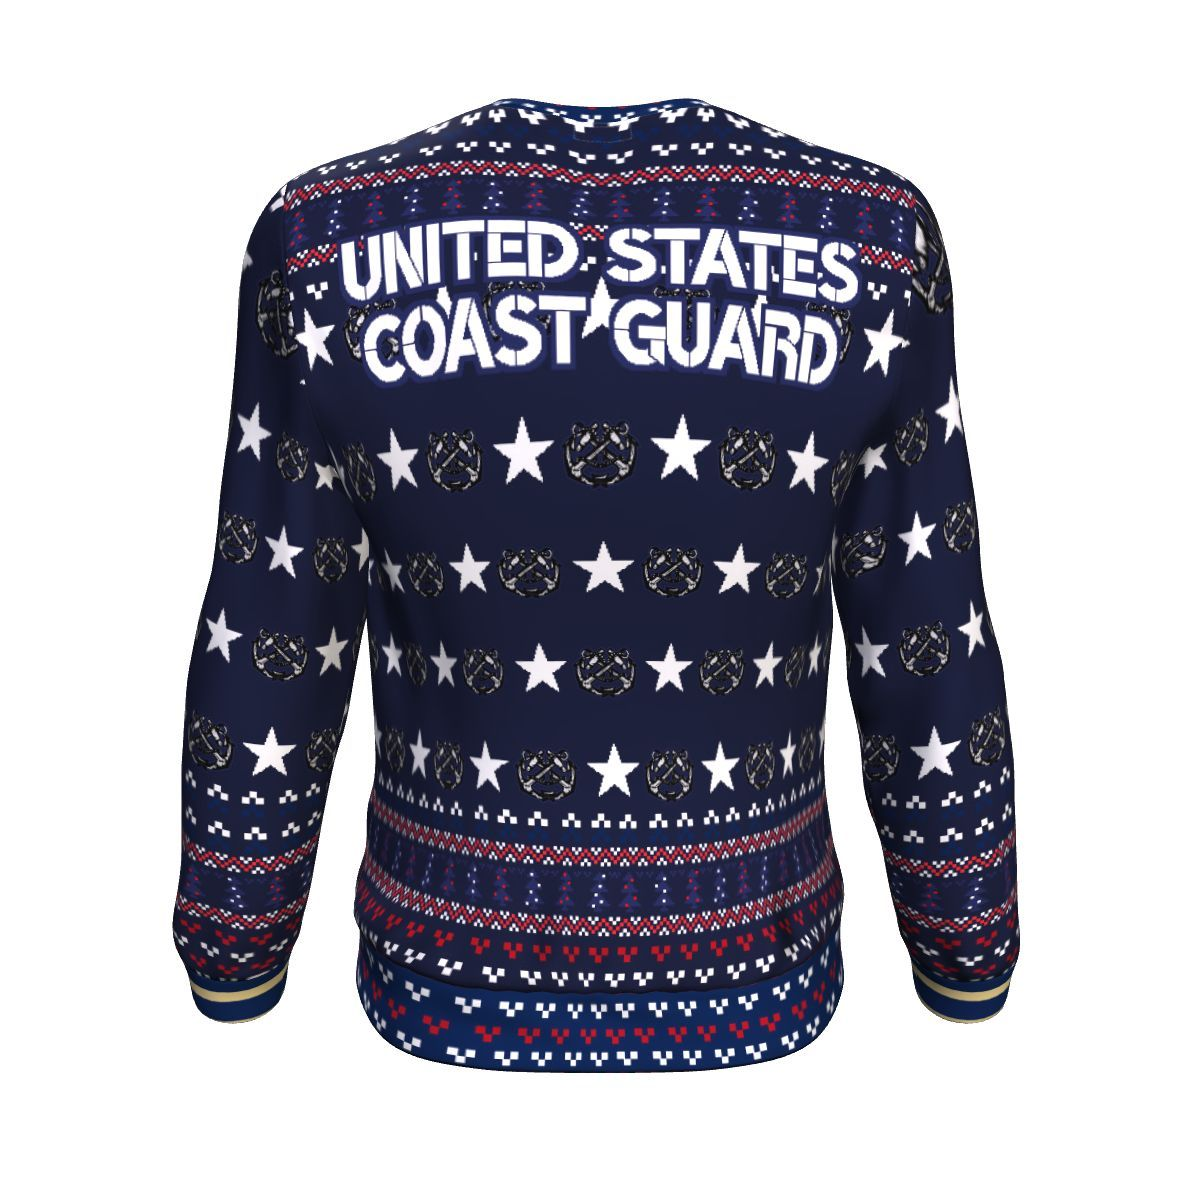 united states coast guard all over printed ugly christmas sweater 4